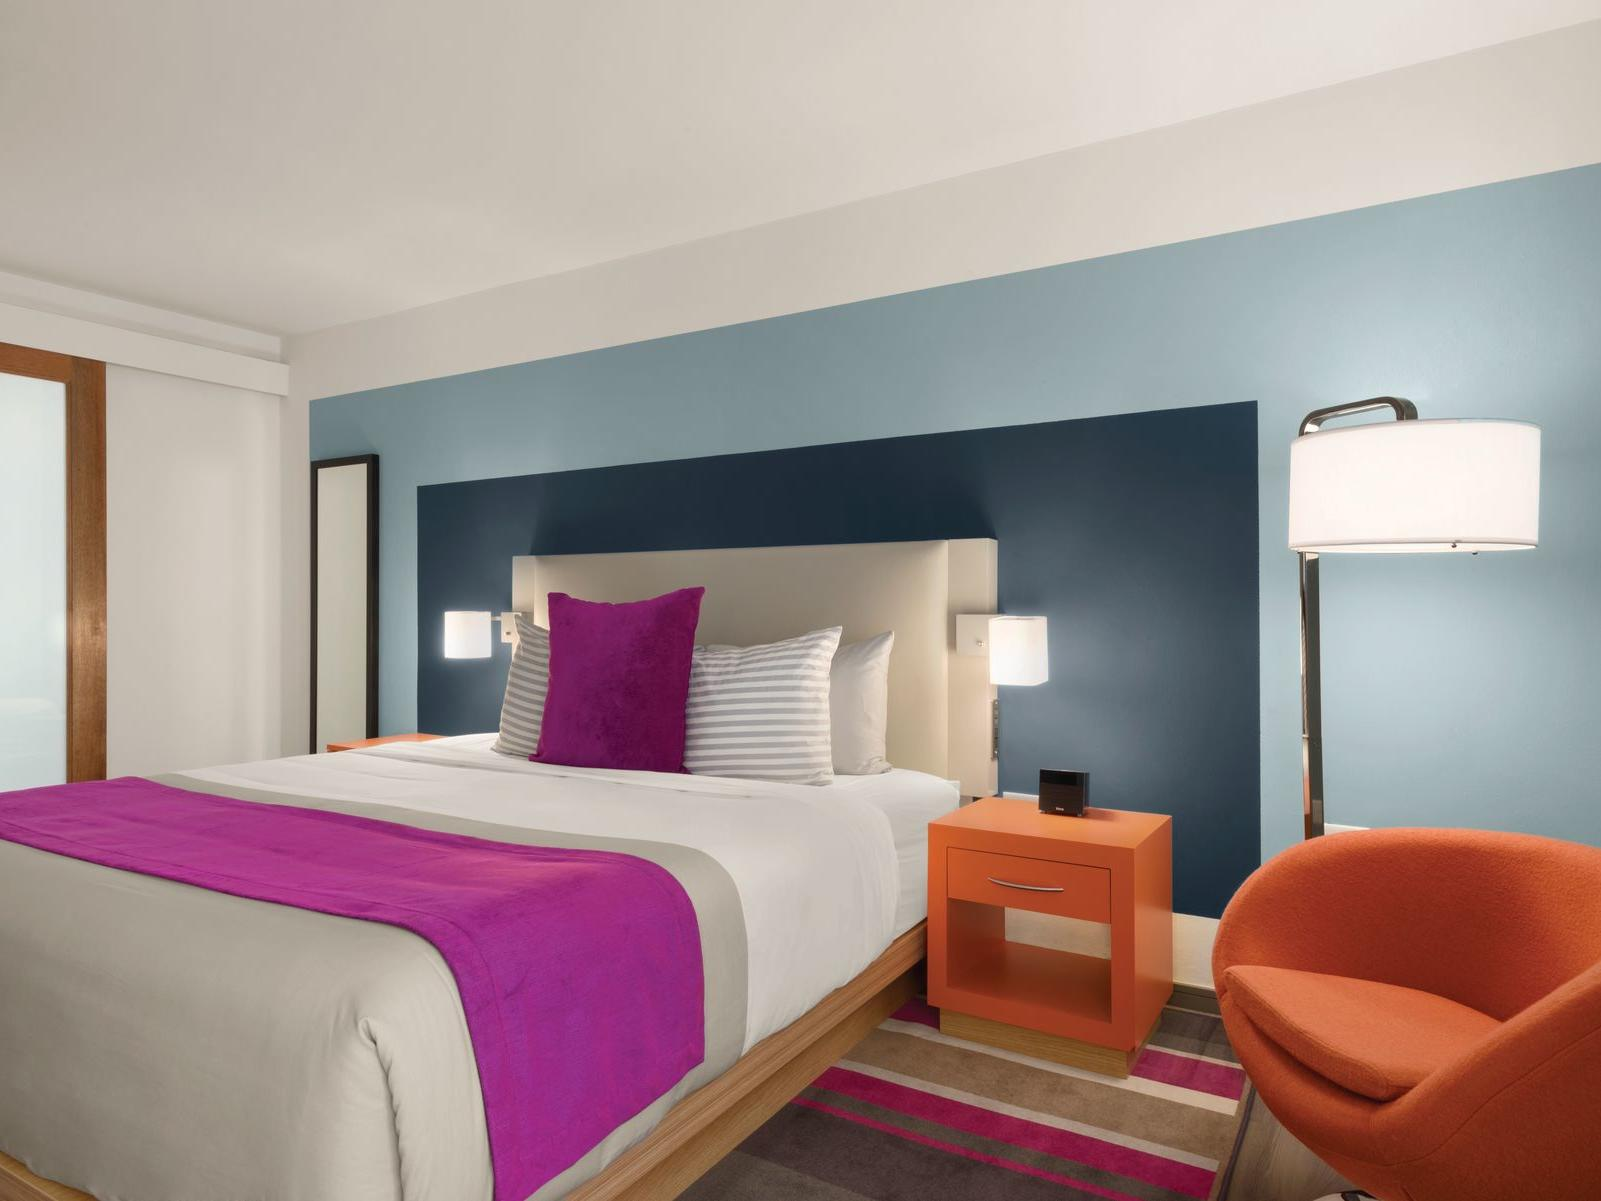 TRYP by Wyndham Isla Verde room with king bed, accent chair and lamp